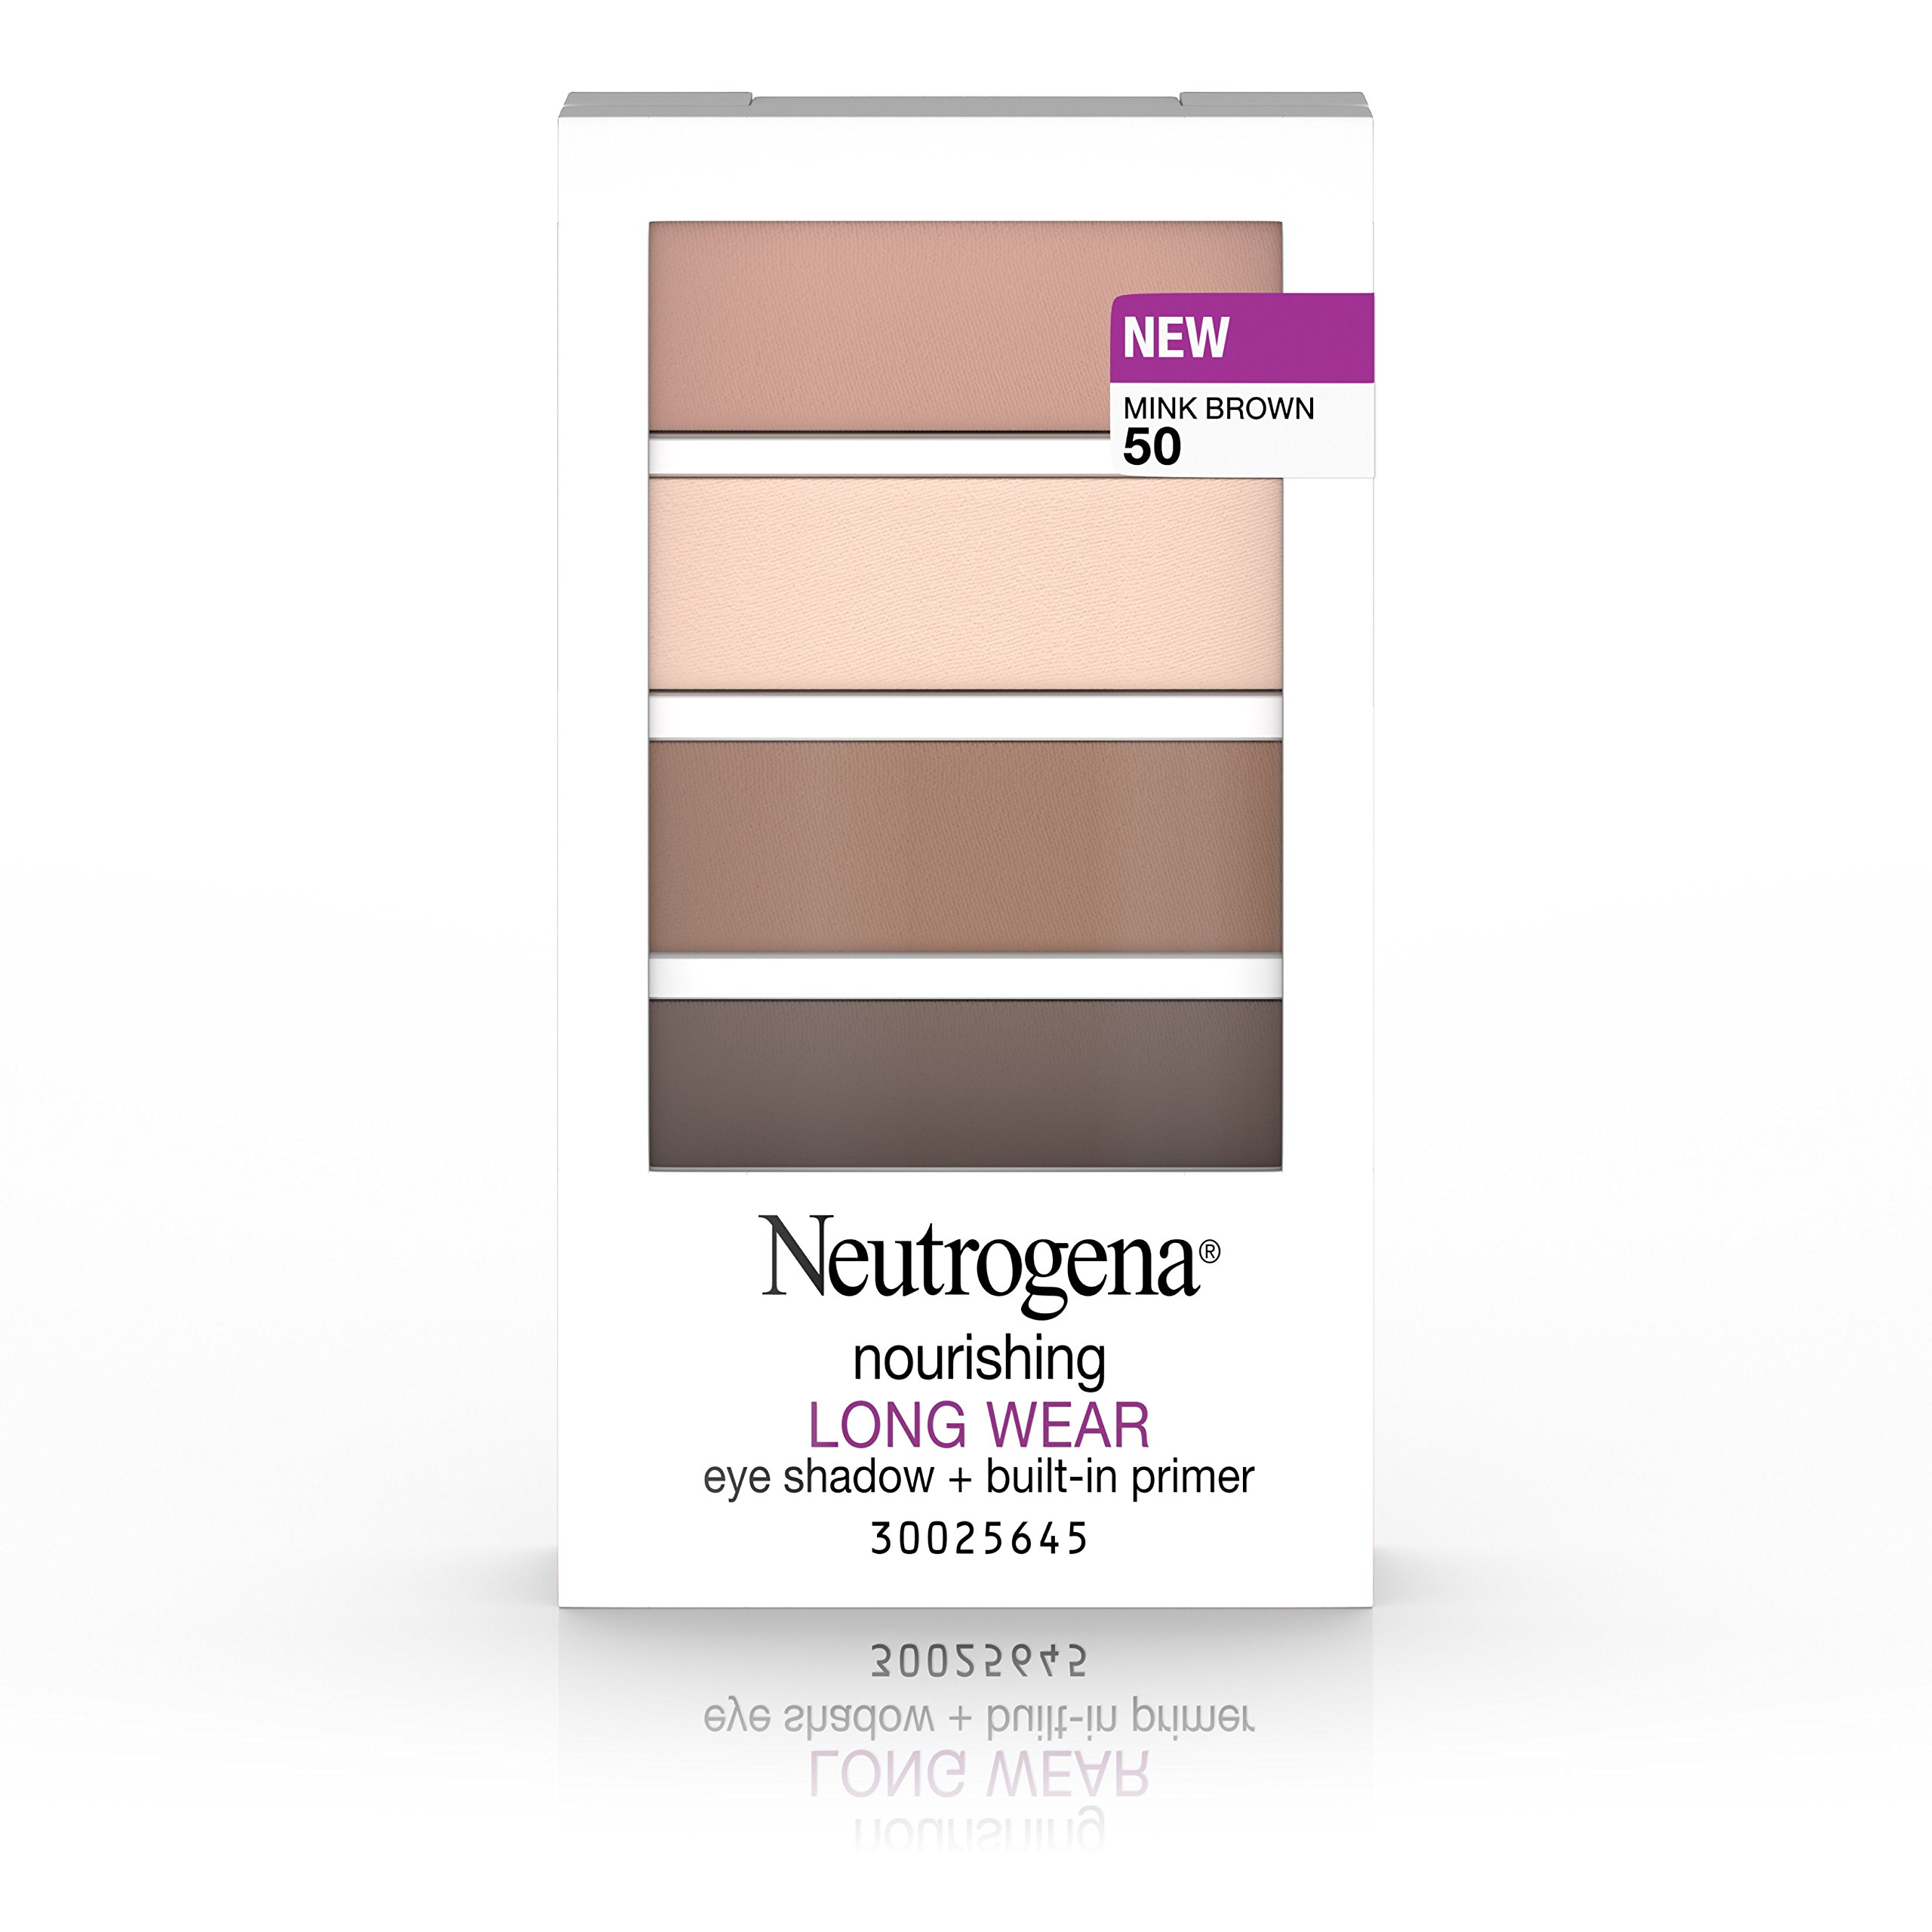 Neutrogena Nourishing Long Wear Eye Shadow + Built-In Primer, 50 Mink Brown, .24 Oz.